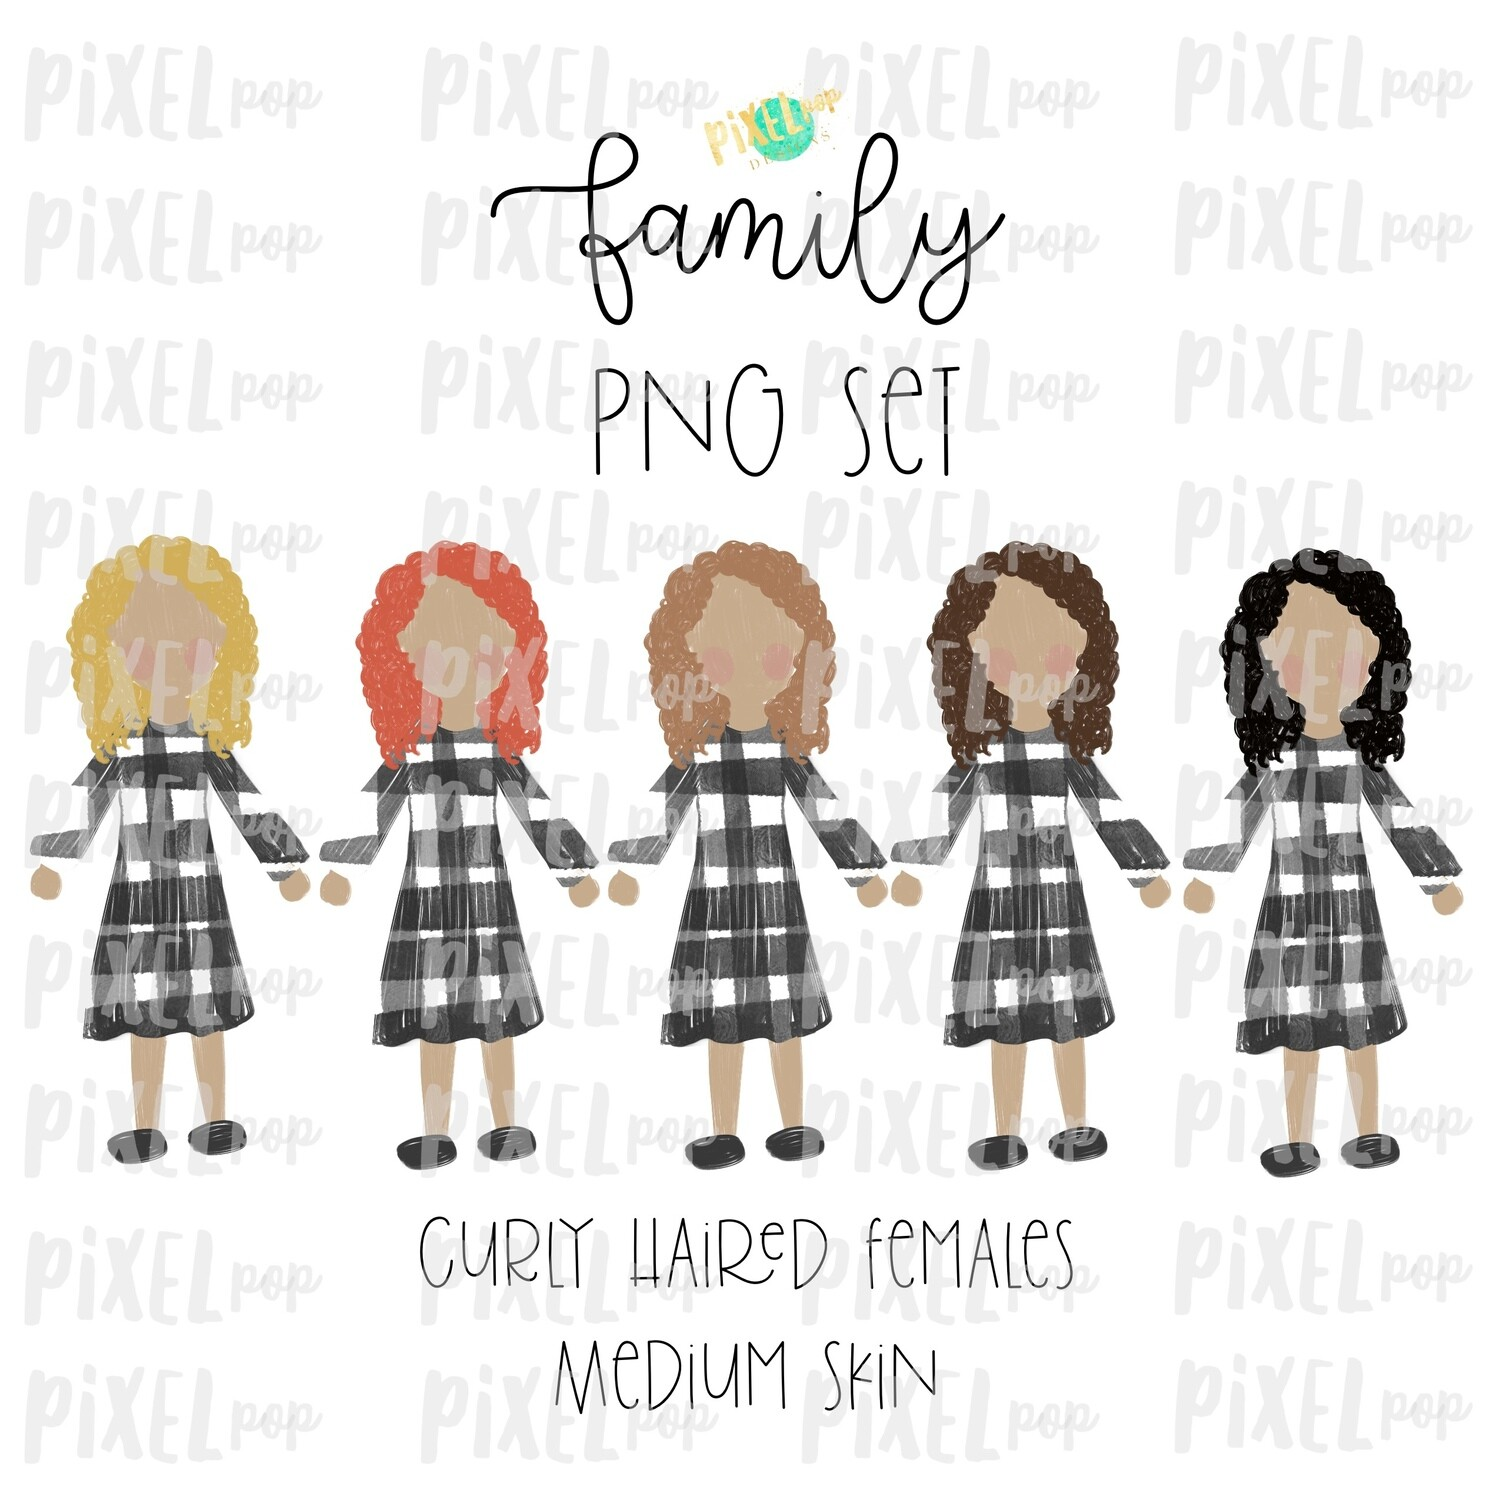 Curly Haired Females (Female E) with Medium Skin Tones Stick People Figure Family Members Set PNG Sublimation | Family Ornament | Portrait